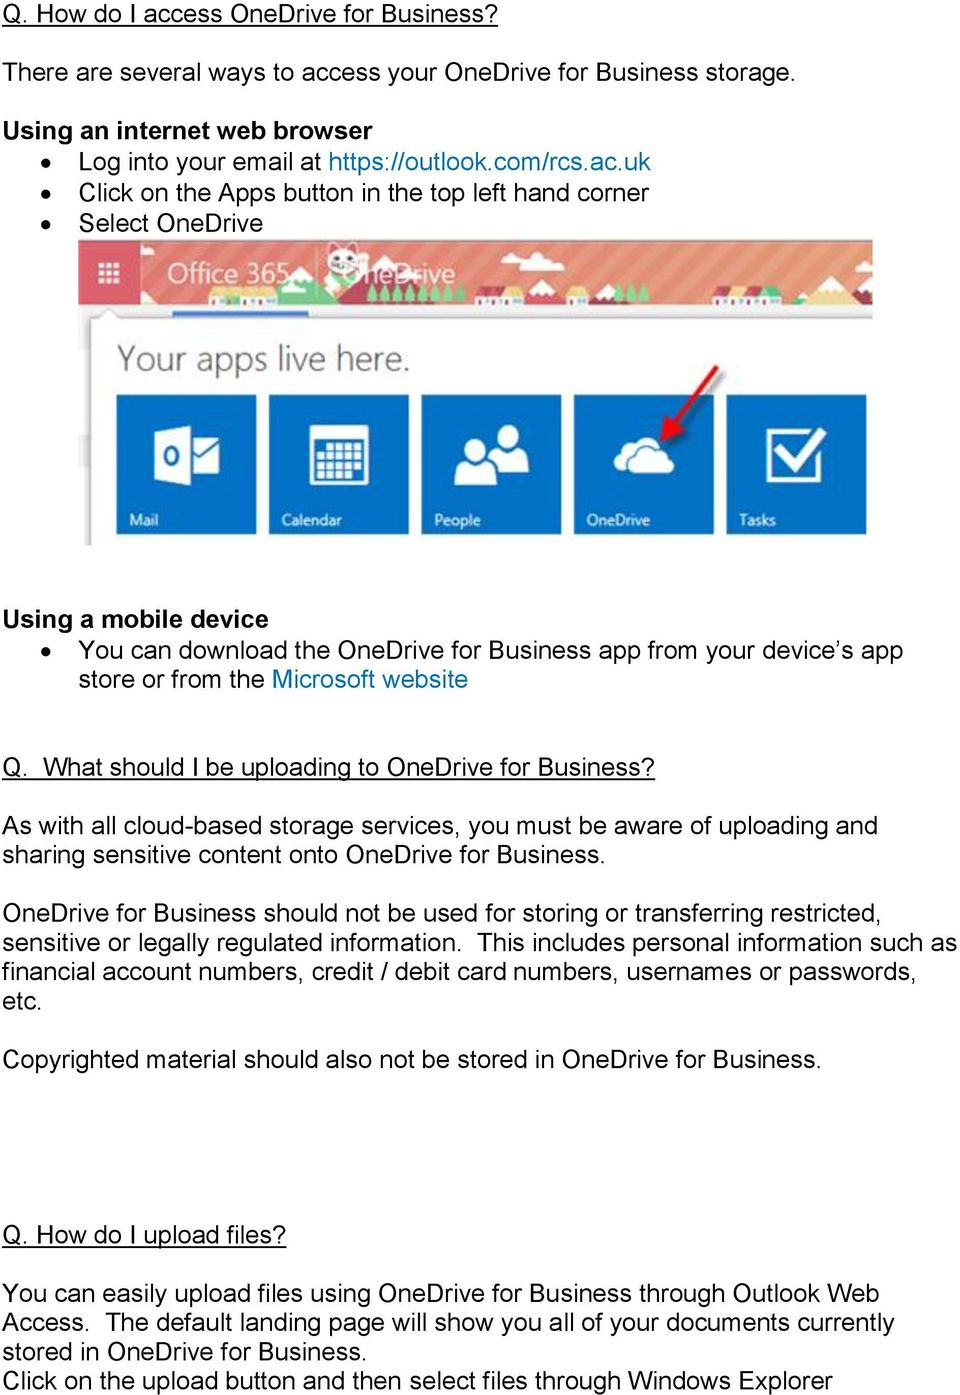 ess your OneDrive for Business storage. Using an internet web browser Log into your email at https://outlook.com/rcs.ac.